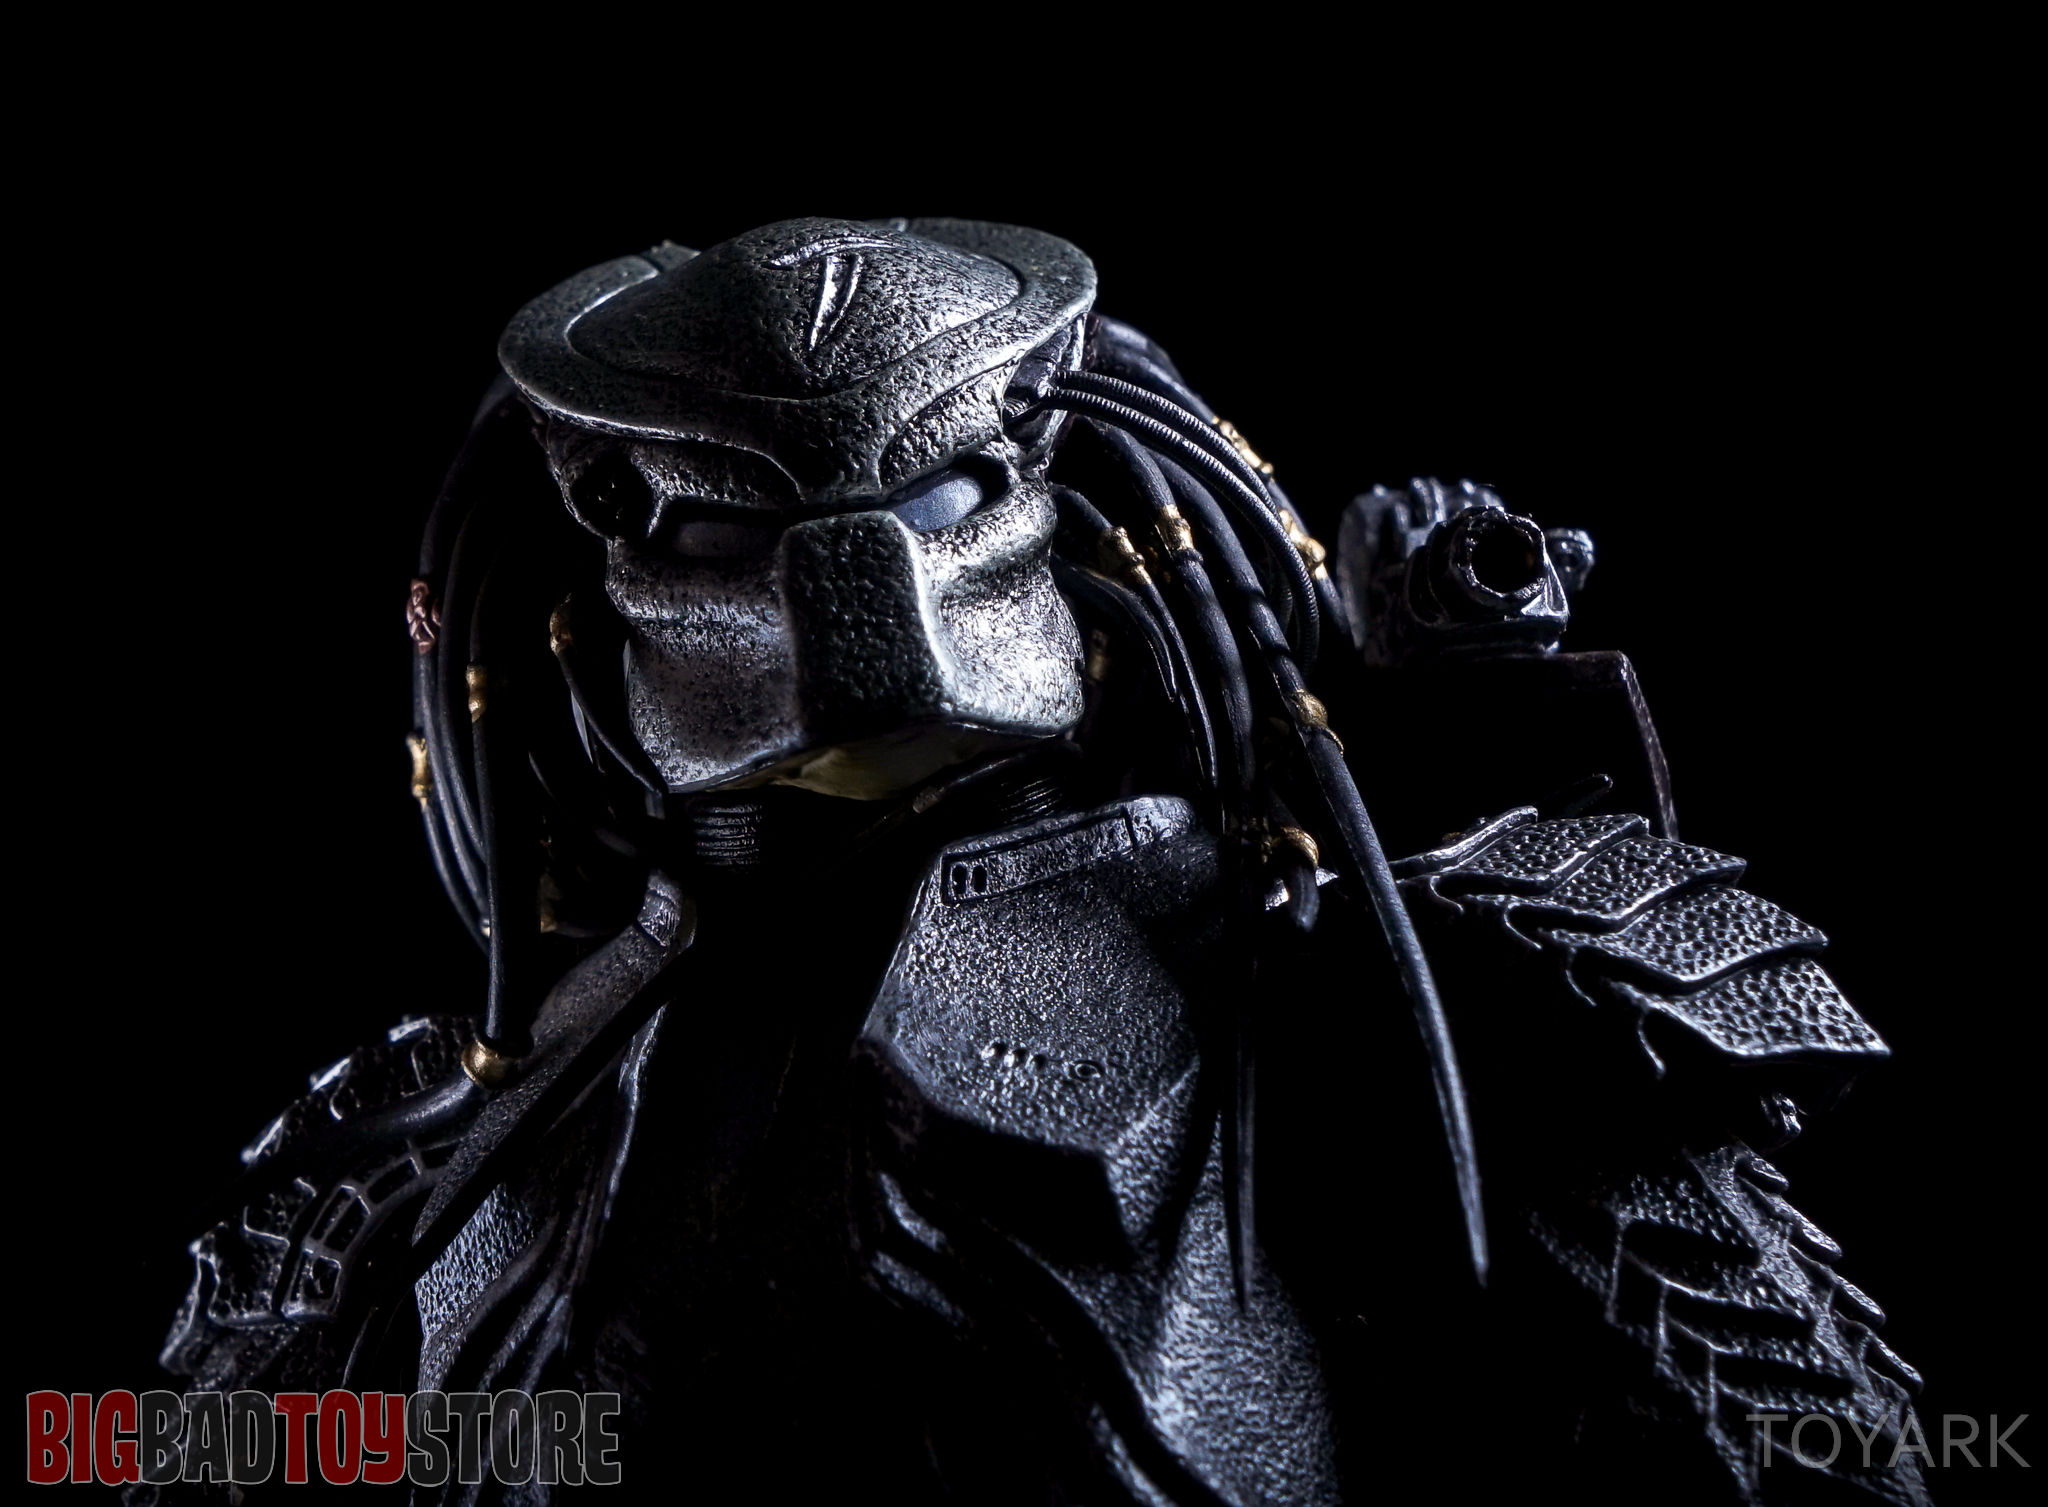 http://news.toyark.com/wp-content/uploads/sites/4/2016/05/NECA-Predator-Series-15-AvP-071.jpg